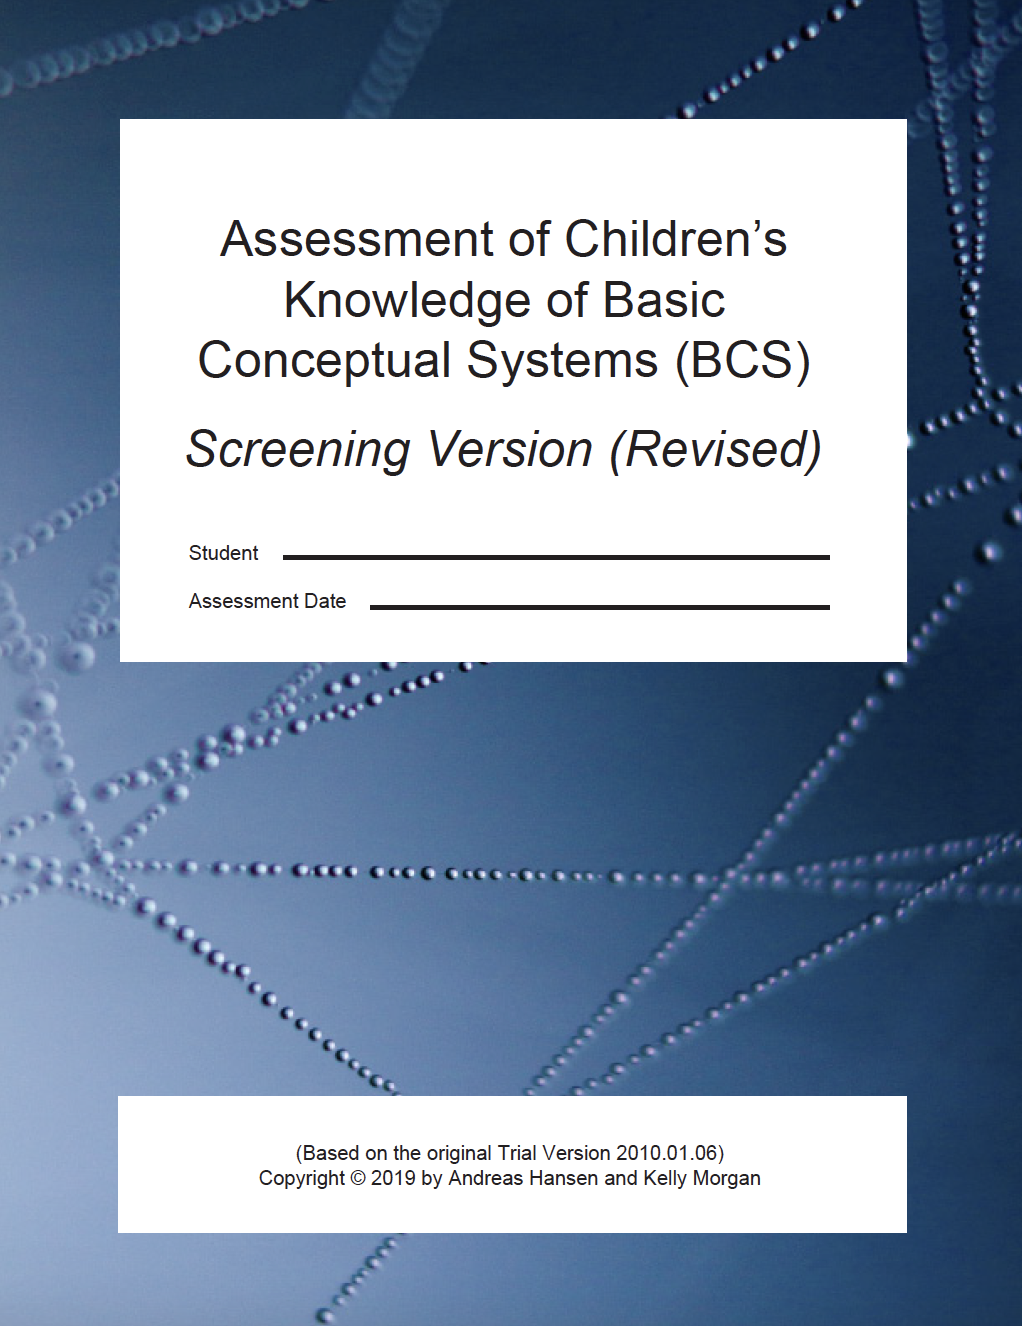 Assessment of Children's Knowledge of Basic Conceptual Systems (BCSs) - Screening version(Hansen, Morgan 2019)